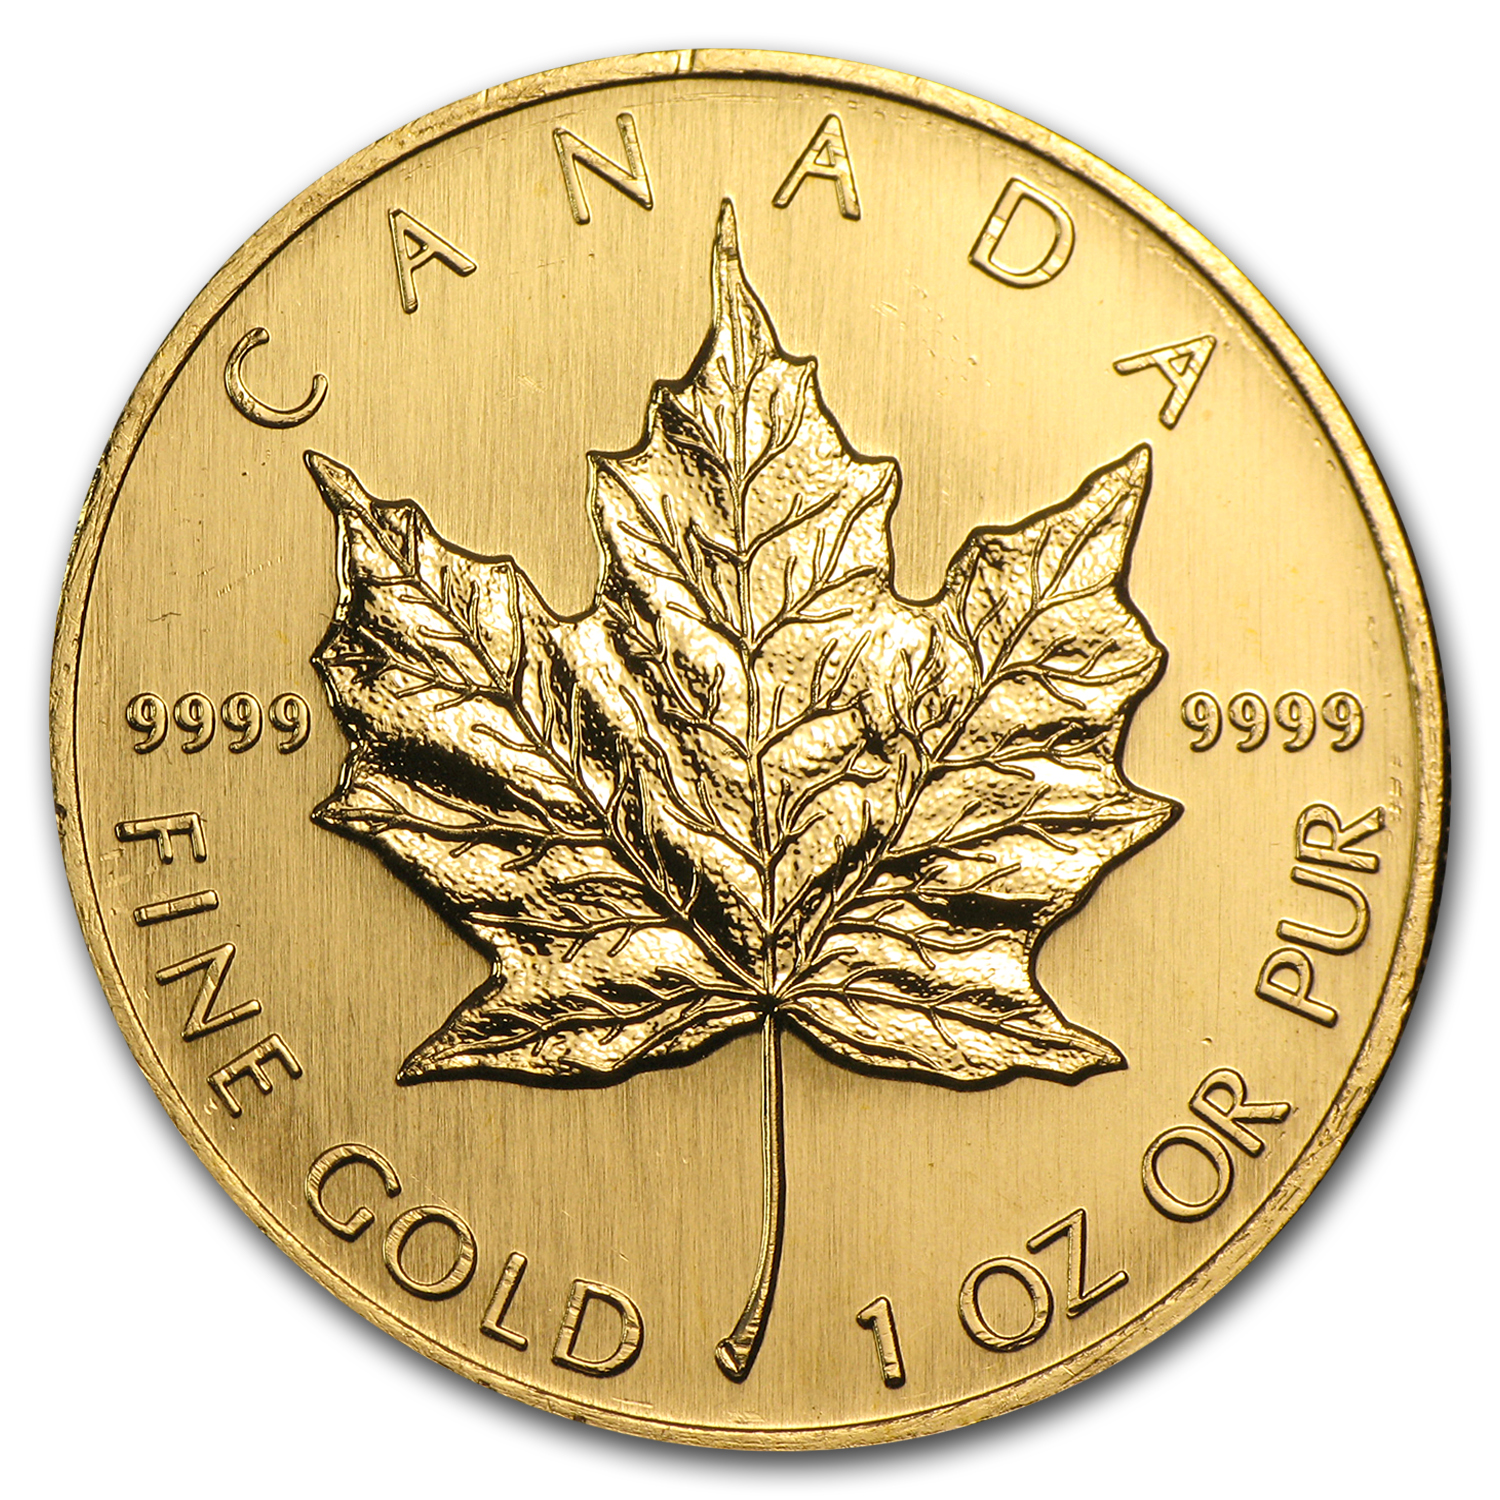 1998 1 oz Gold Canadian Maple Leaf - Brilliant Uncirculated